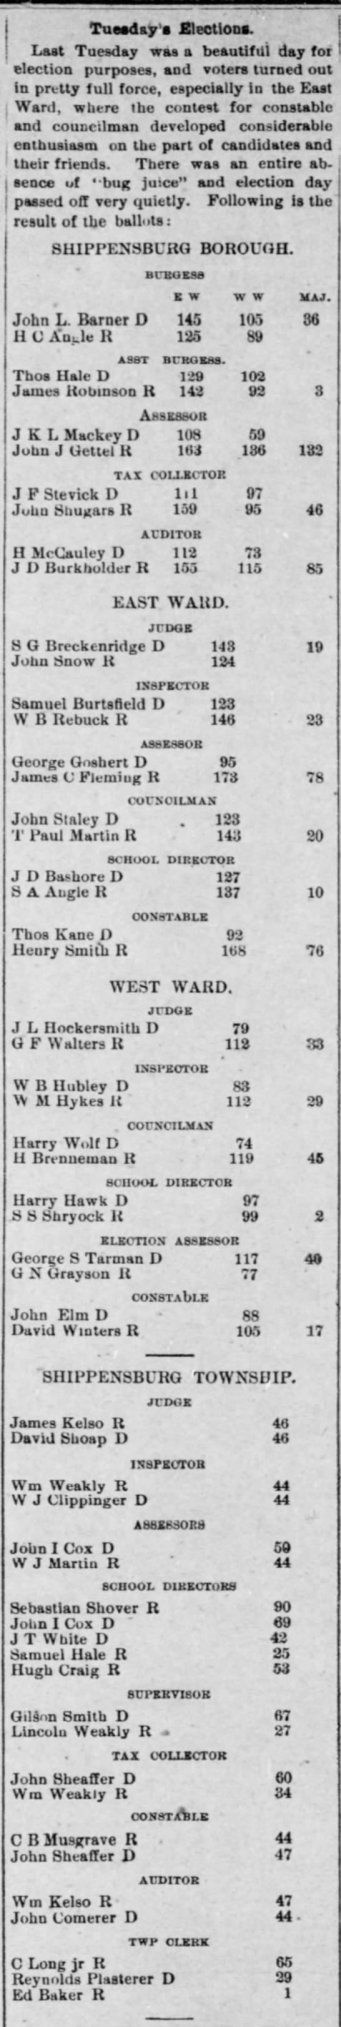 john-sheaffer-1889-election-results